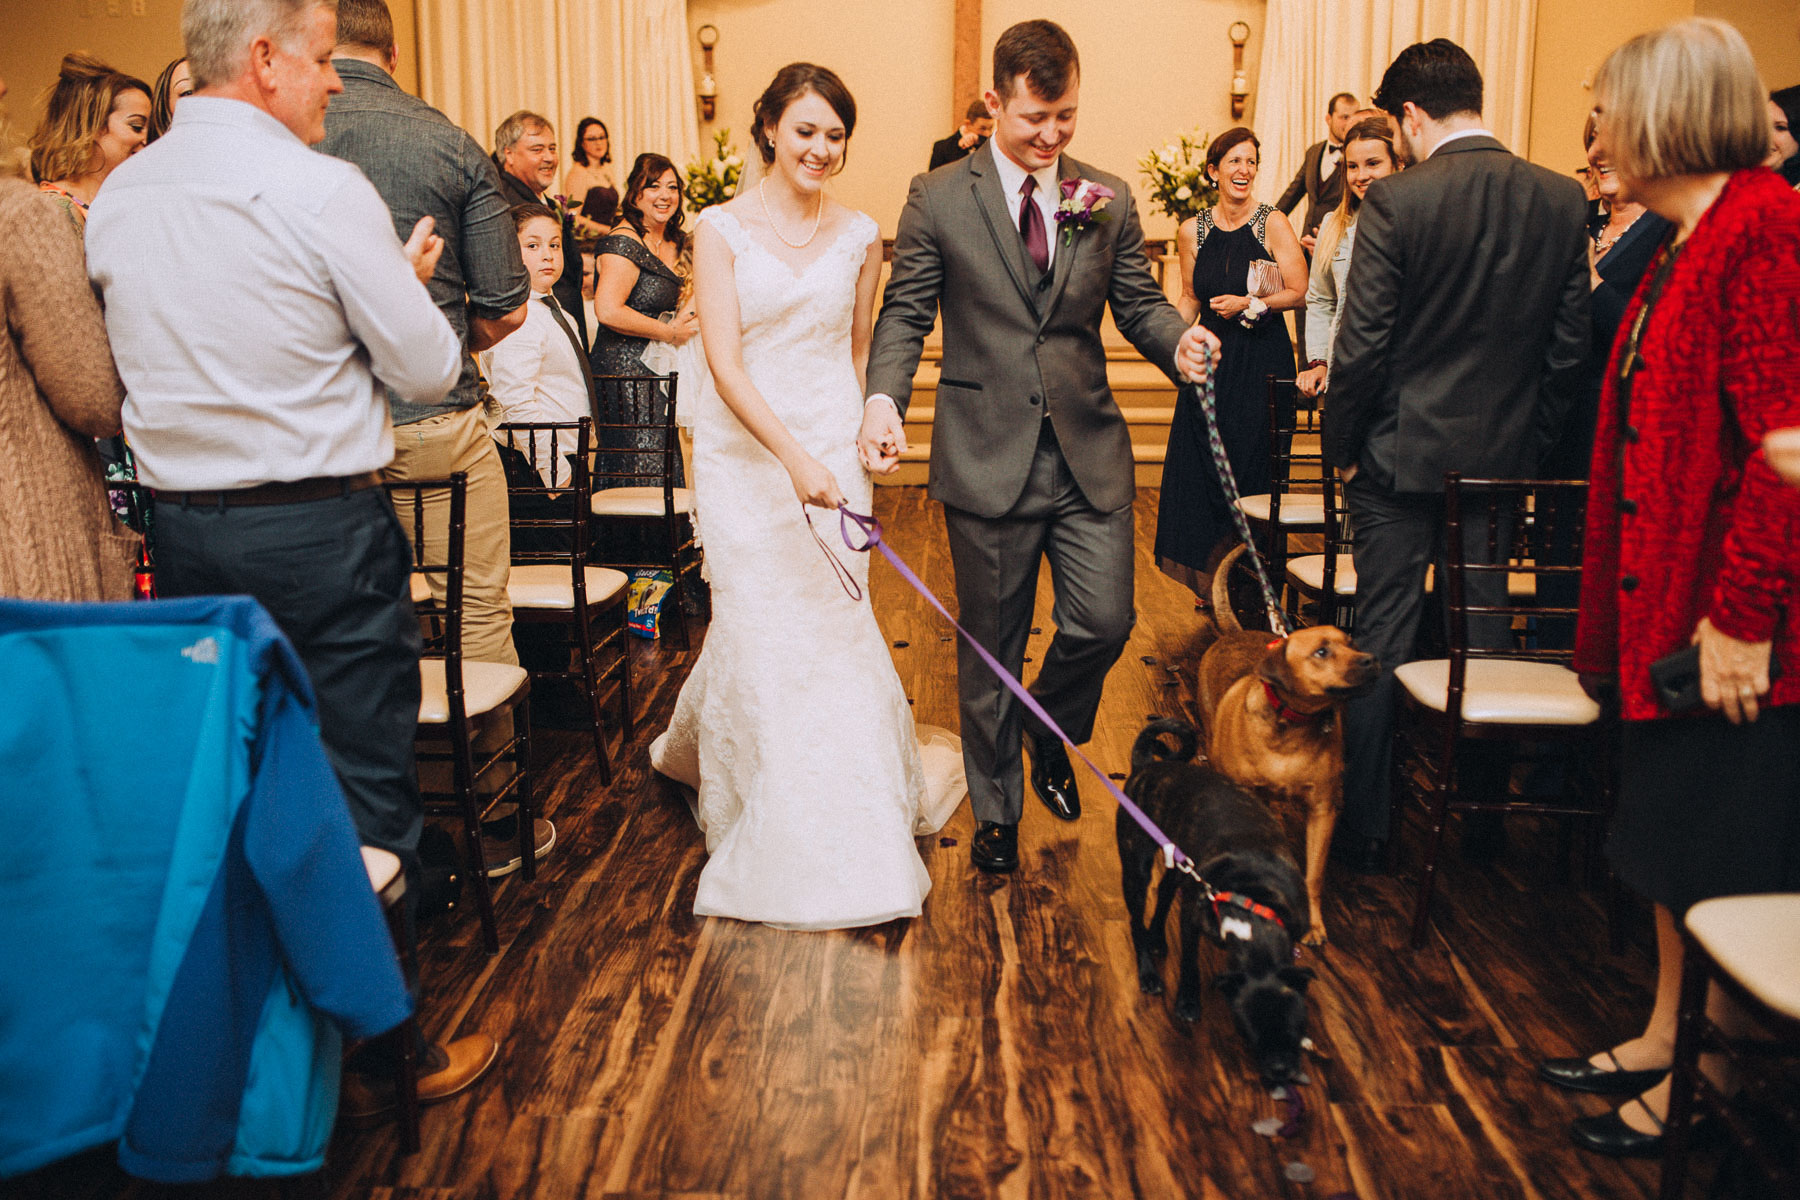 Bride and groom exit wedding ceremony with dogs on leash.